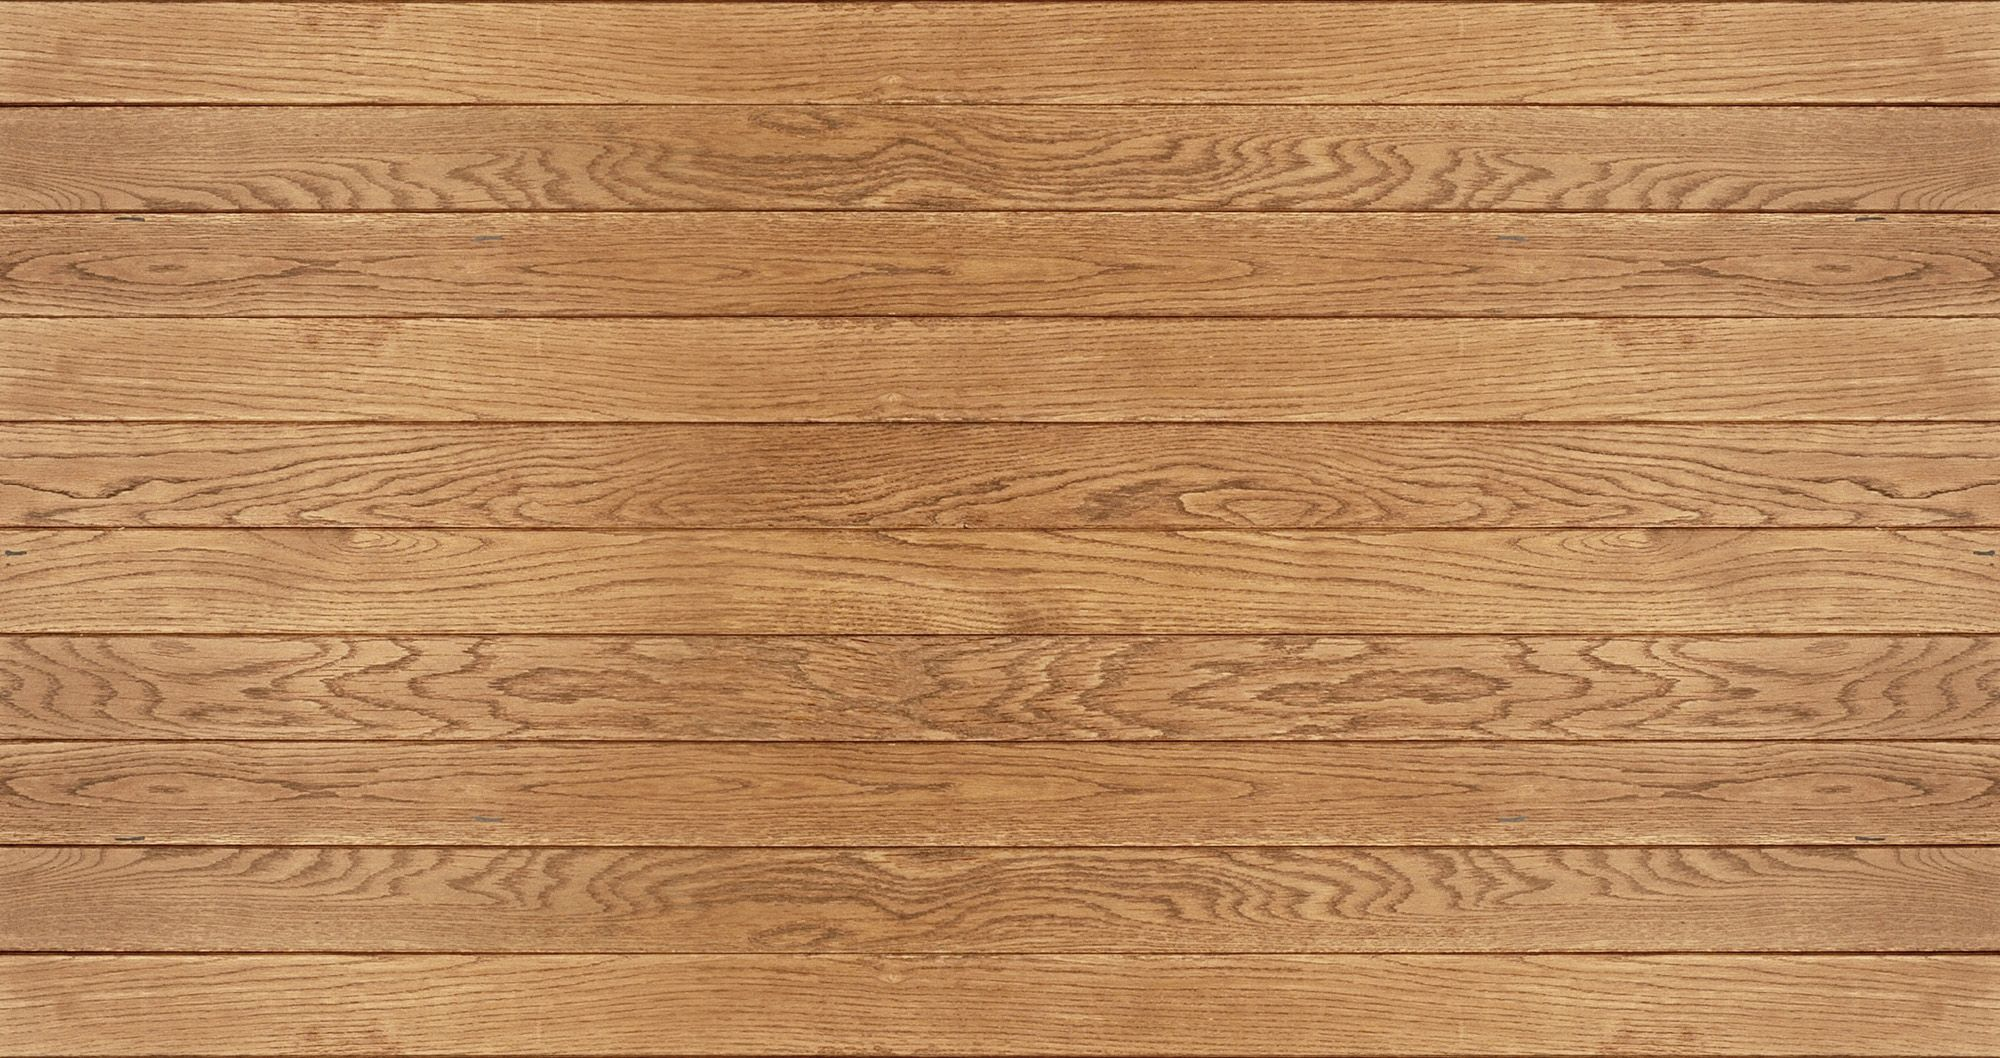 Light wood plank textureallaboutbeauty21 textures for Hardwood decking planks